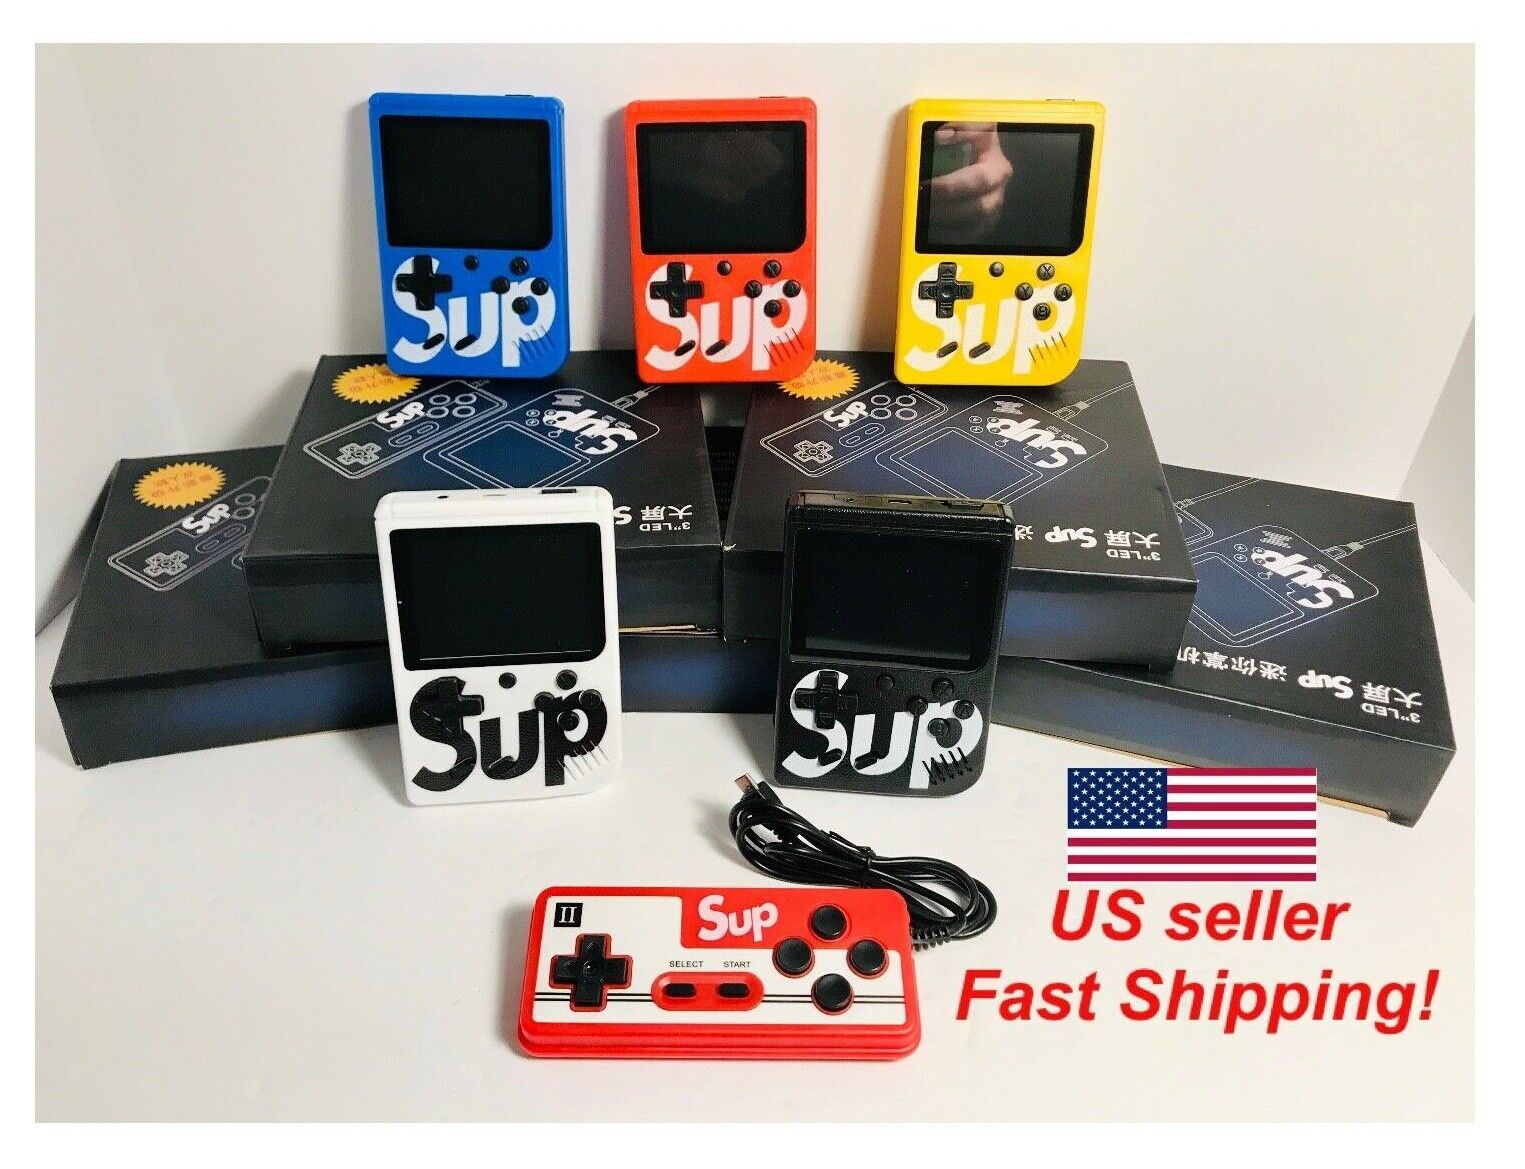 NEW SUP PLUS Retro FC Game Boy Handheld+400 Games TV Hookup+2 Player Controller!